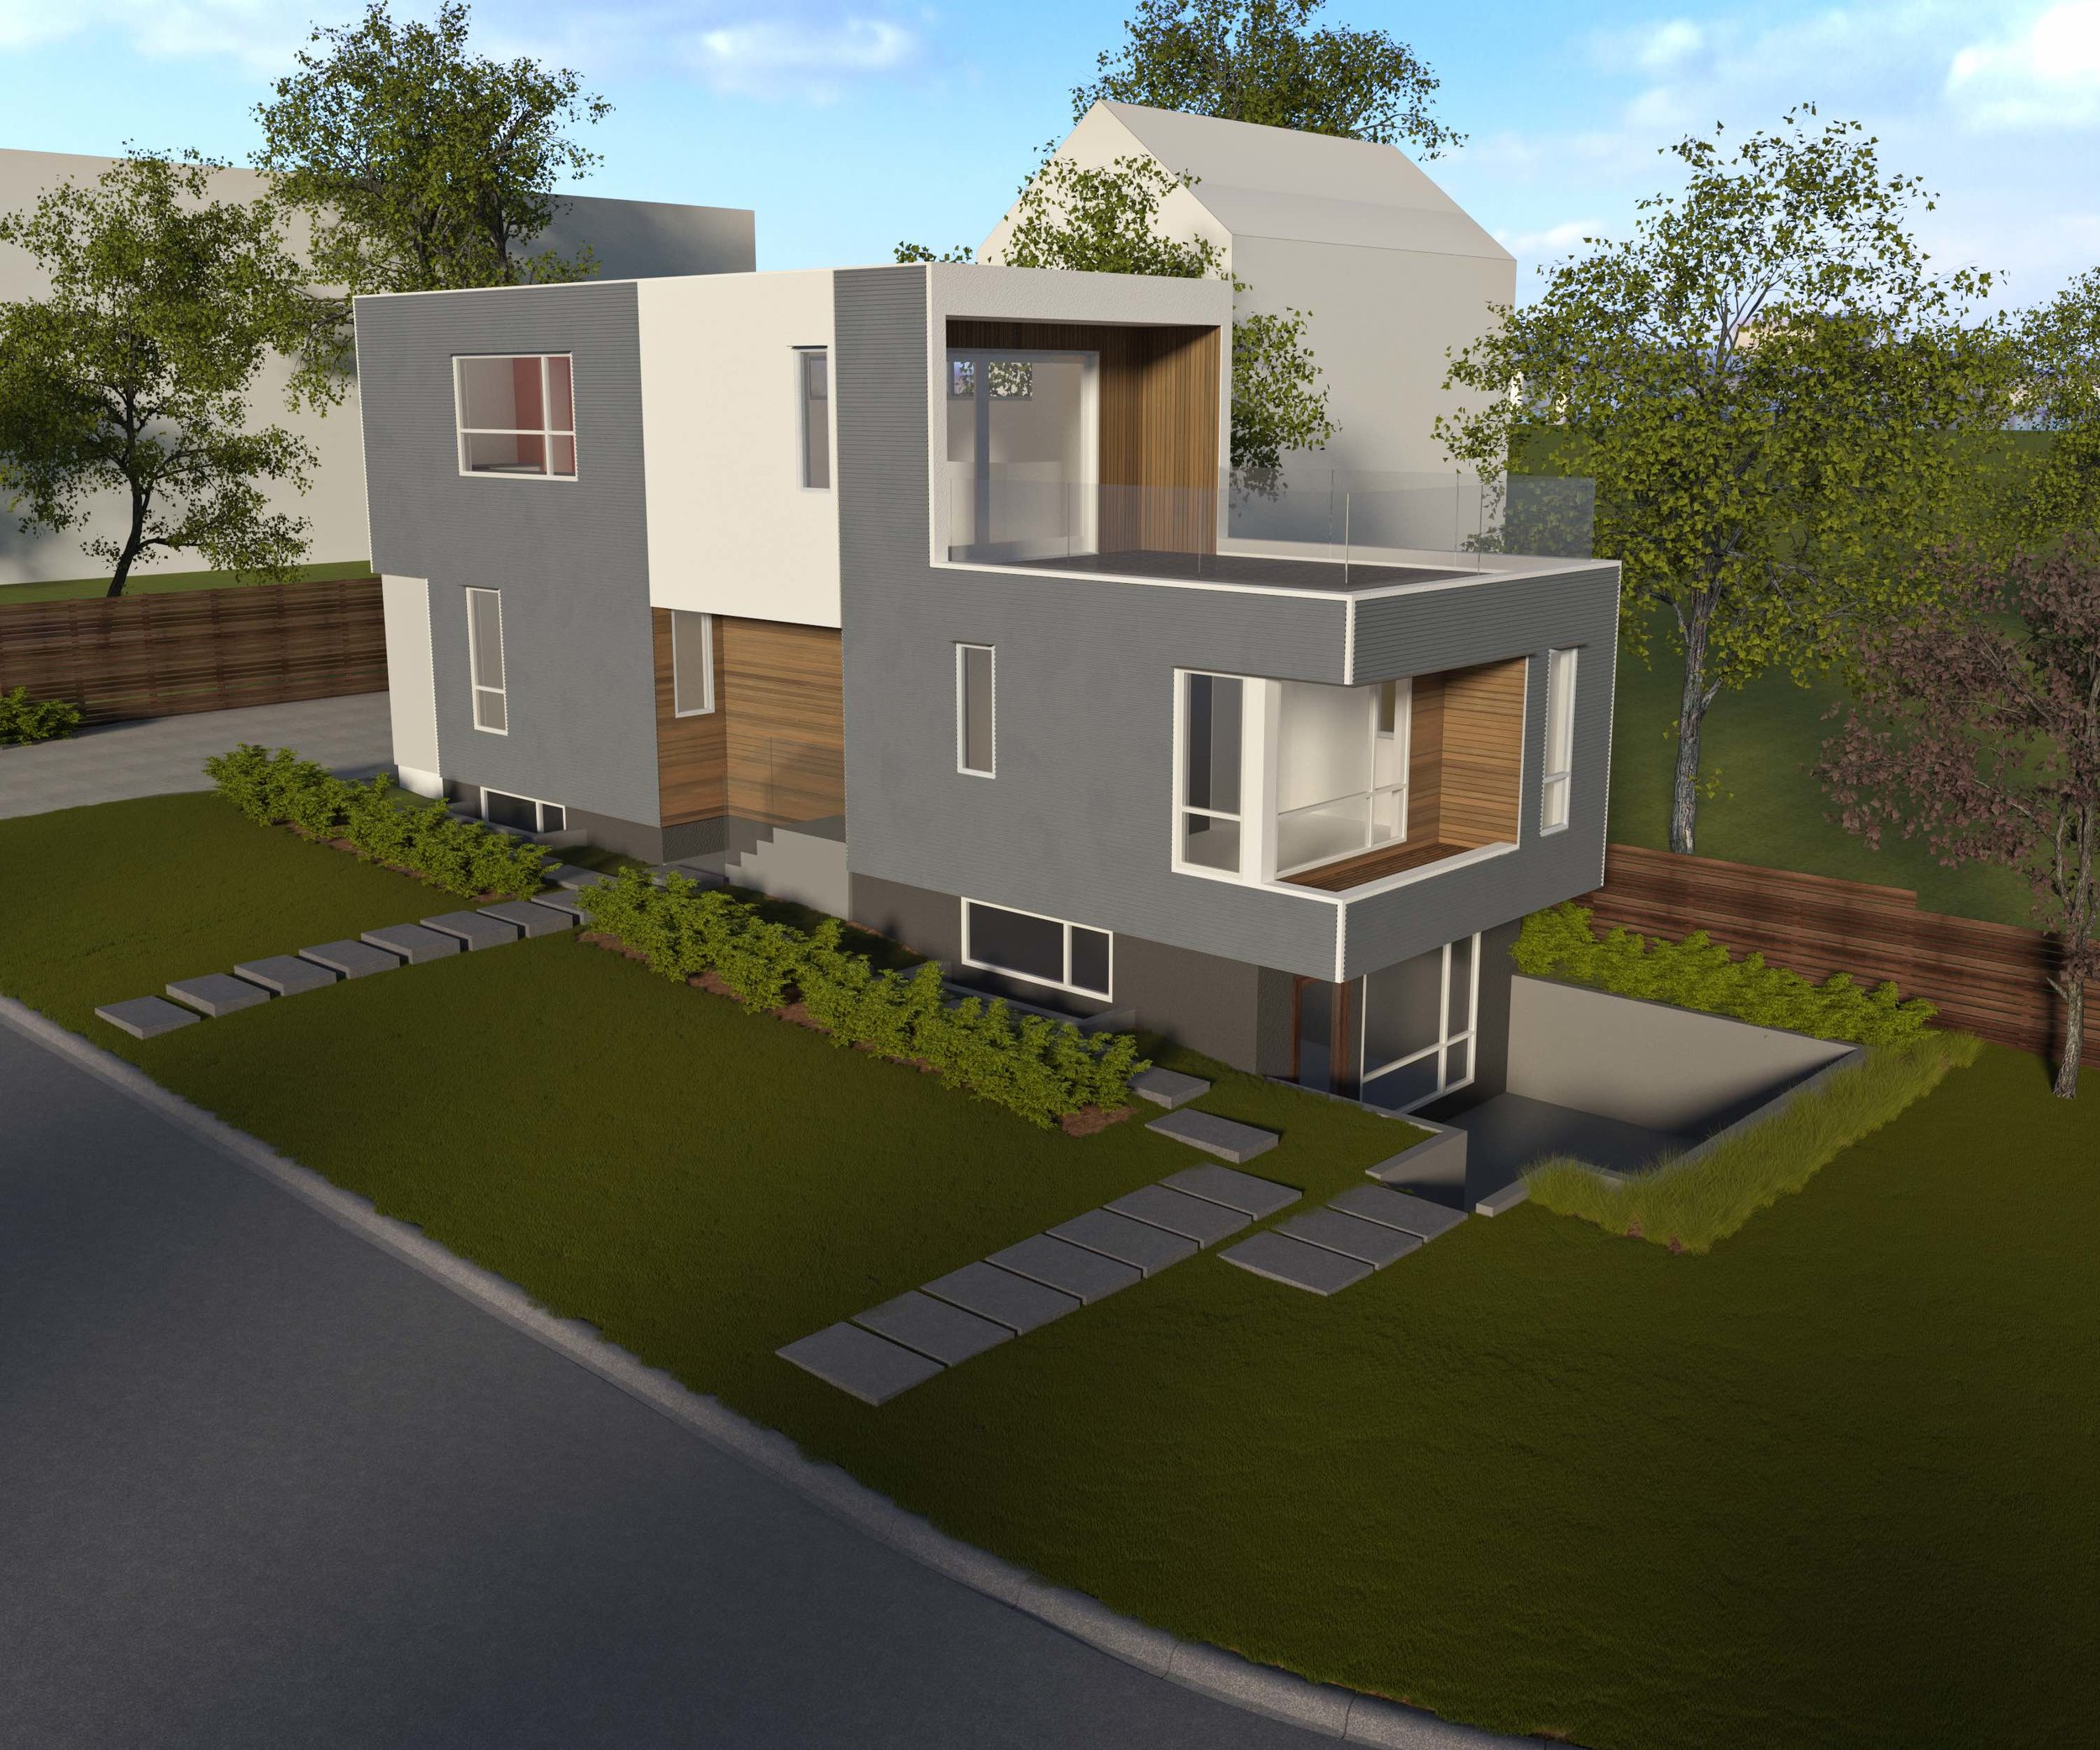 Side View of Sturdee Street Duplex - a Modern duplex designed and built in Saxe Point, Victoria BC